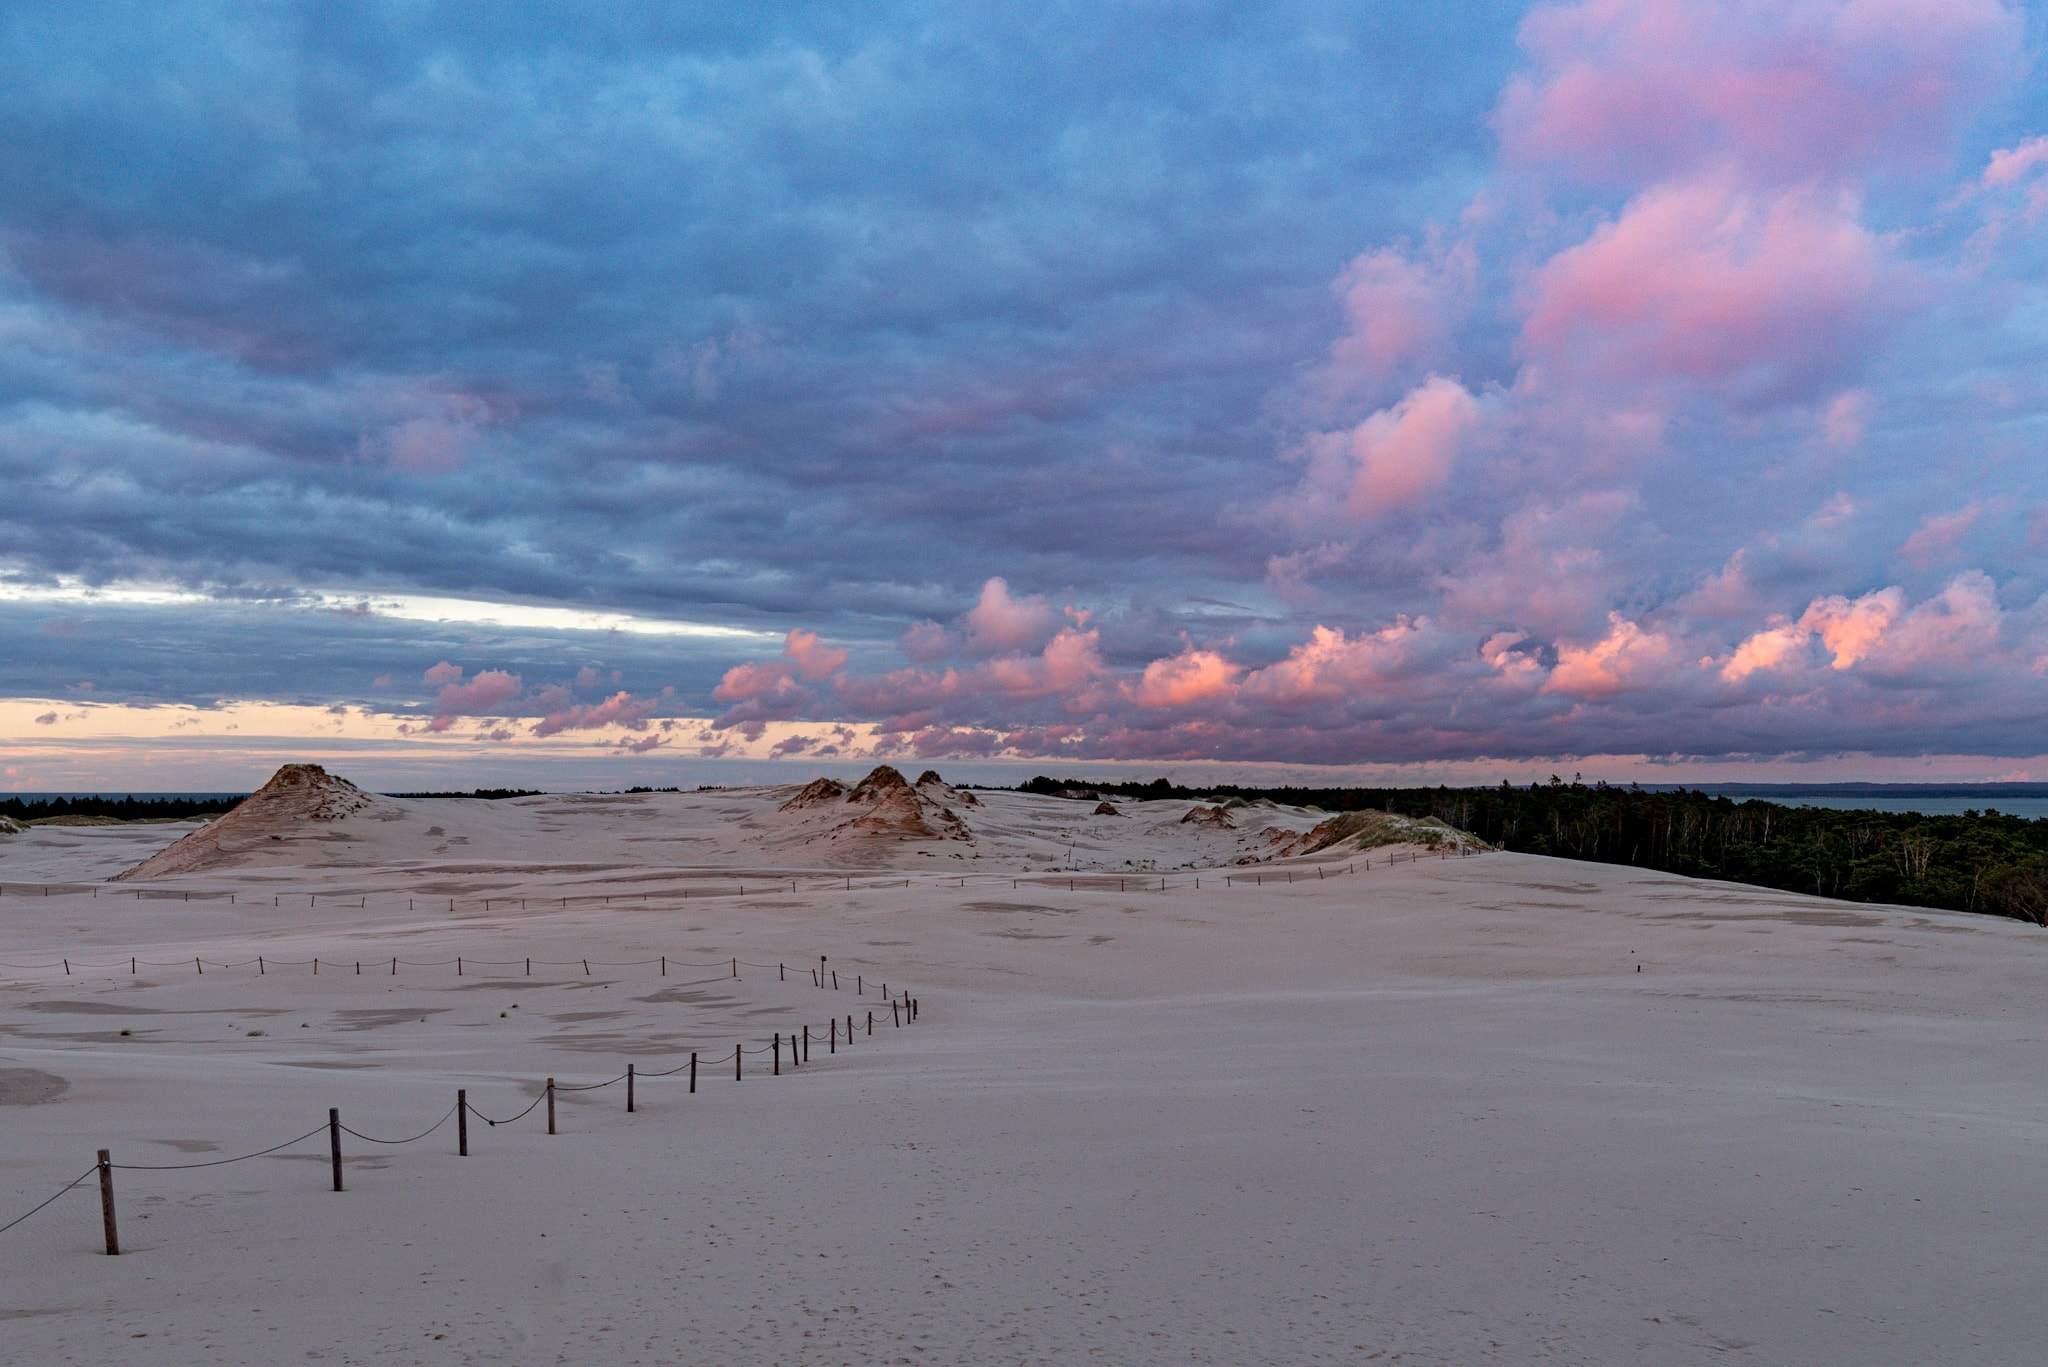 Sunset over dunes